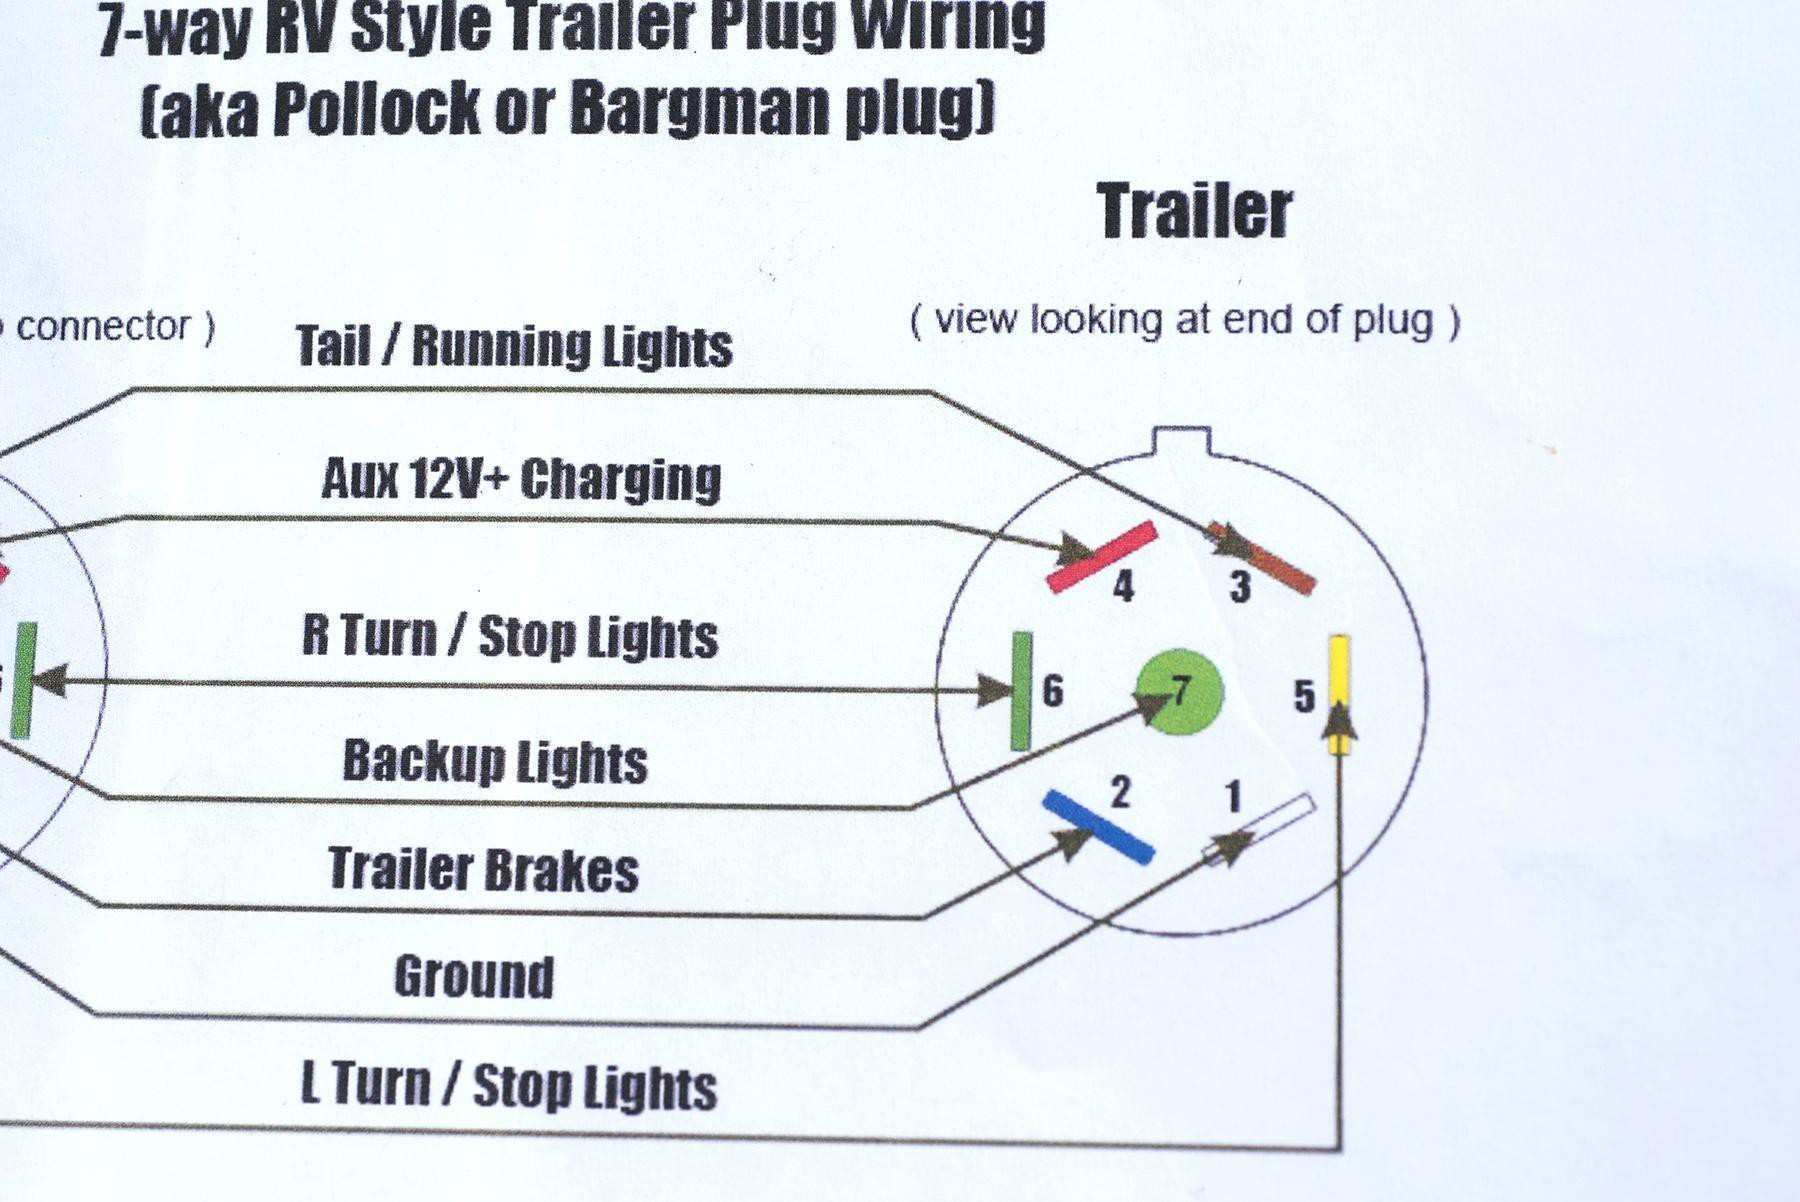 Pin To Plug Wiring Diagram on 7 prong trailer plug diagram, 7 pin trailer harness diagram, 7 round trailer plug diagram, 7 pin plug connector, 7 pin tow wiring, 7 pin trailer wiring, 7 pin trailer connection diagram, 7 pin plug ford, 7 pin rv plug out way, 7 pronge trailer connector diagram, 7 rv plug diagram,